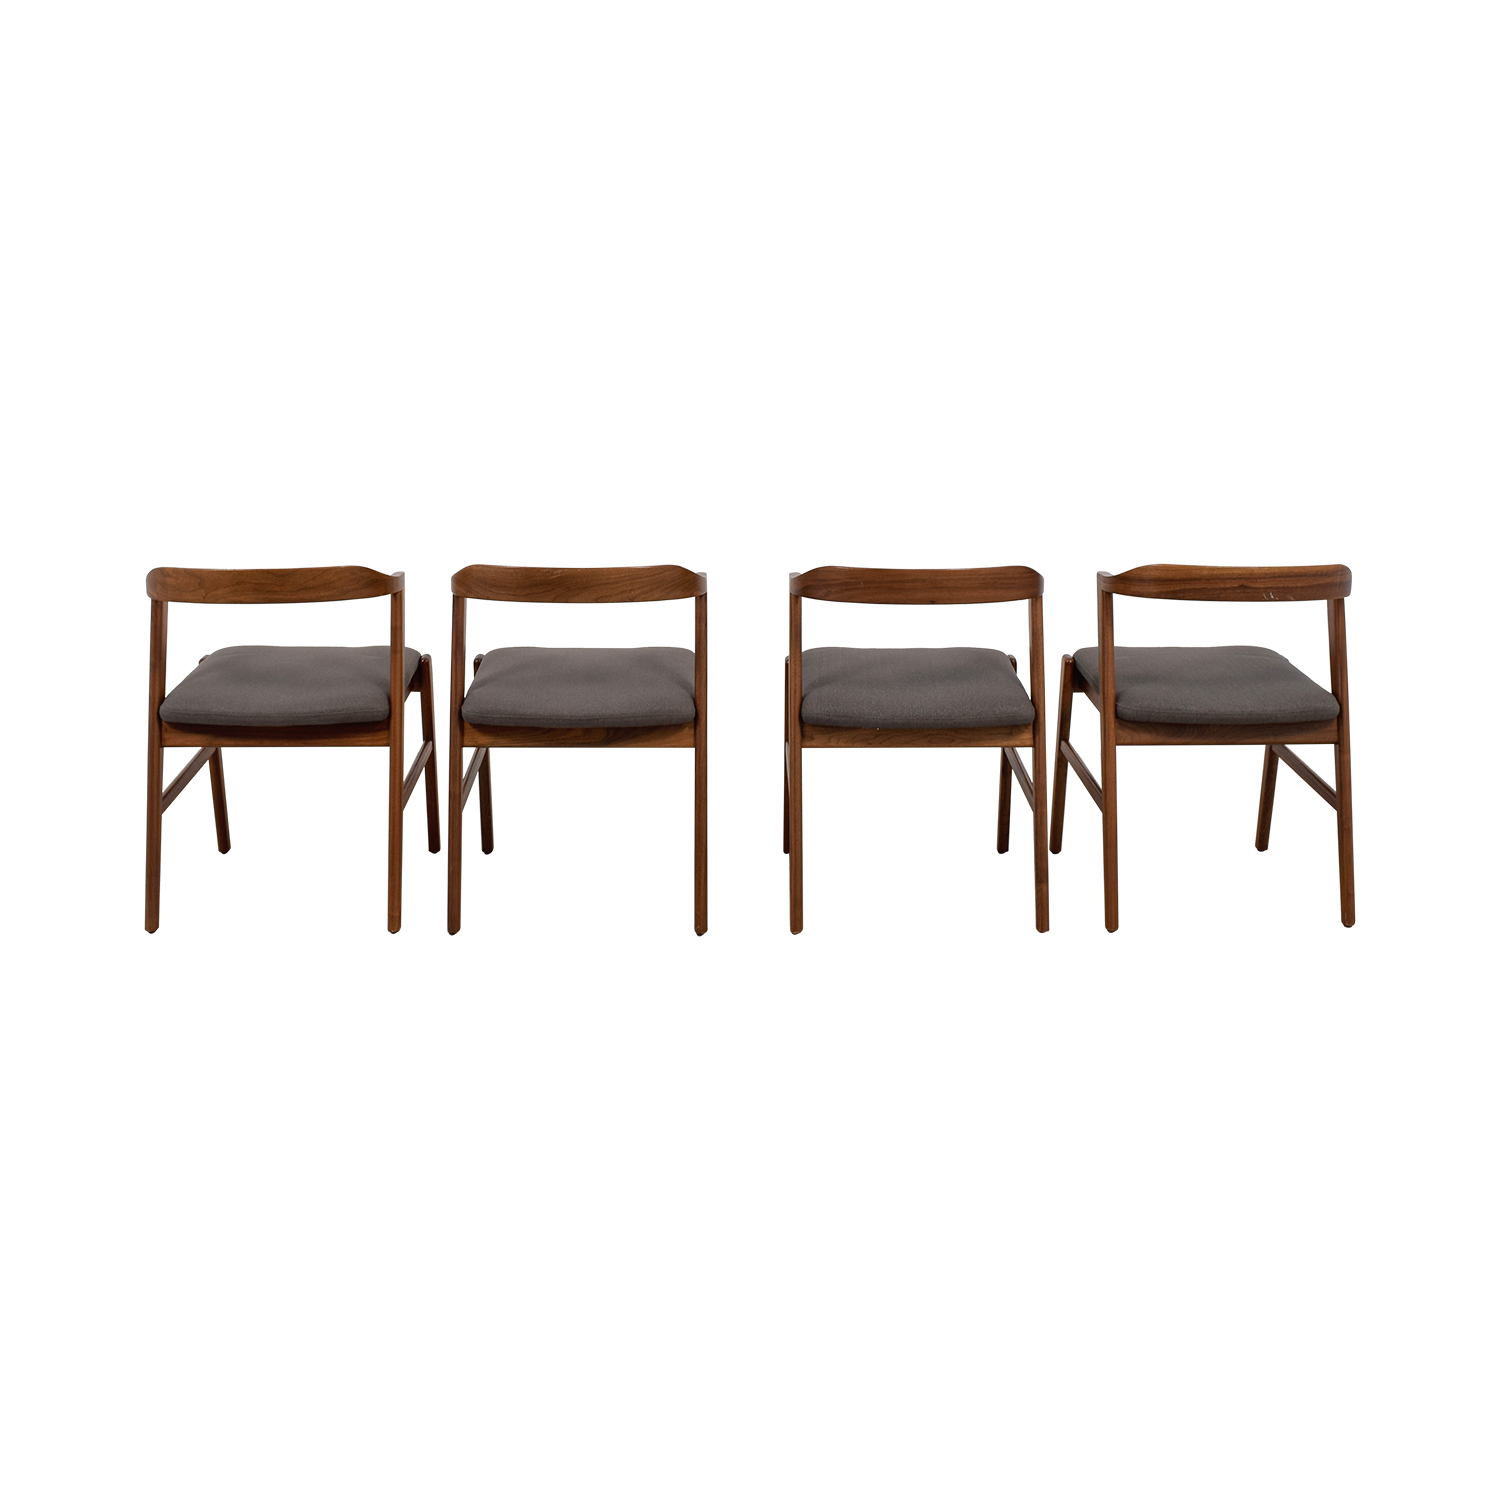 buy Room & Board Jansen Side Chair in Merit Fabric Room & Board Chairs